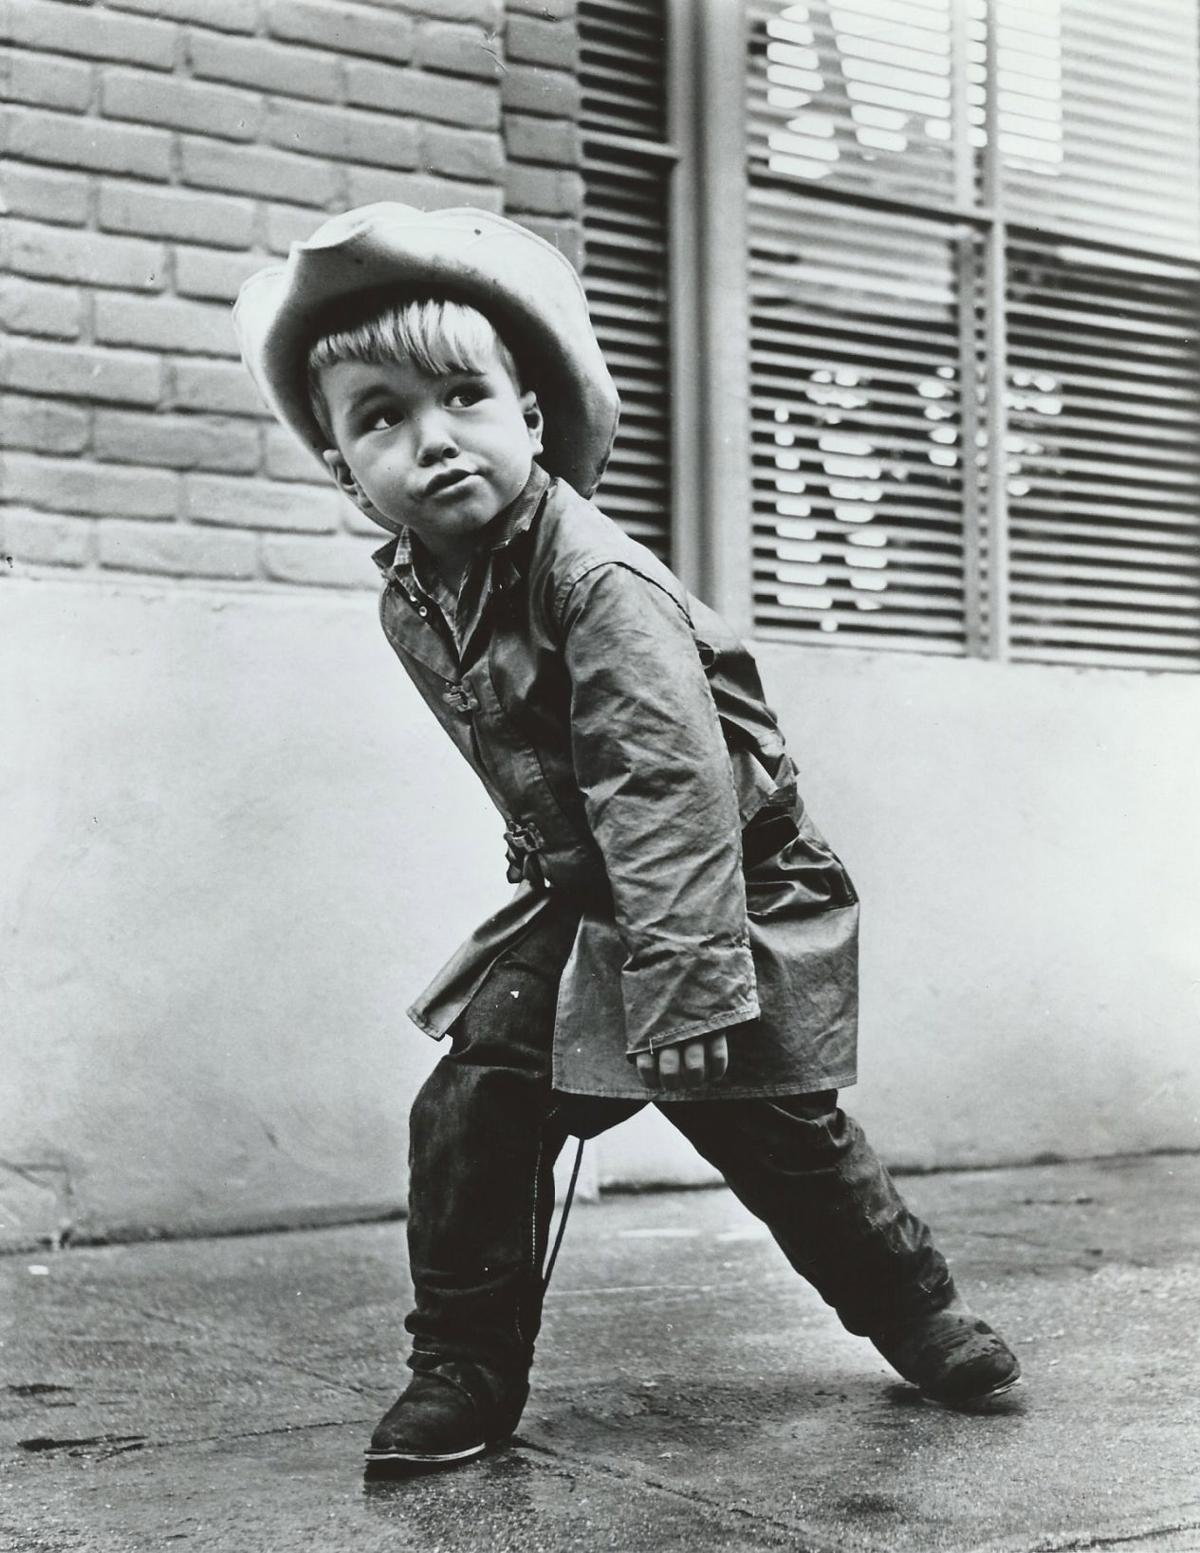 Rance Howard Movies >> Leon Returns to Mayberry: Clint Howard coming to festival in Mount Airy     journalnow.com